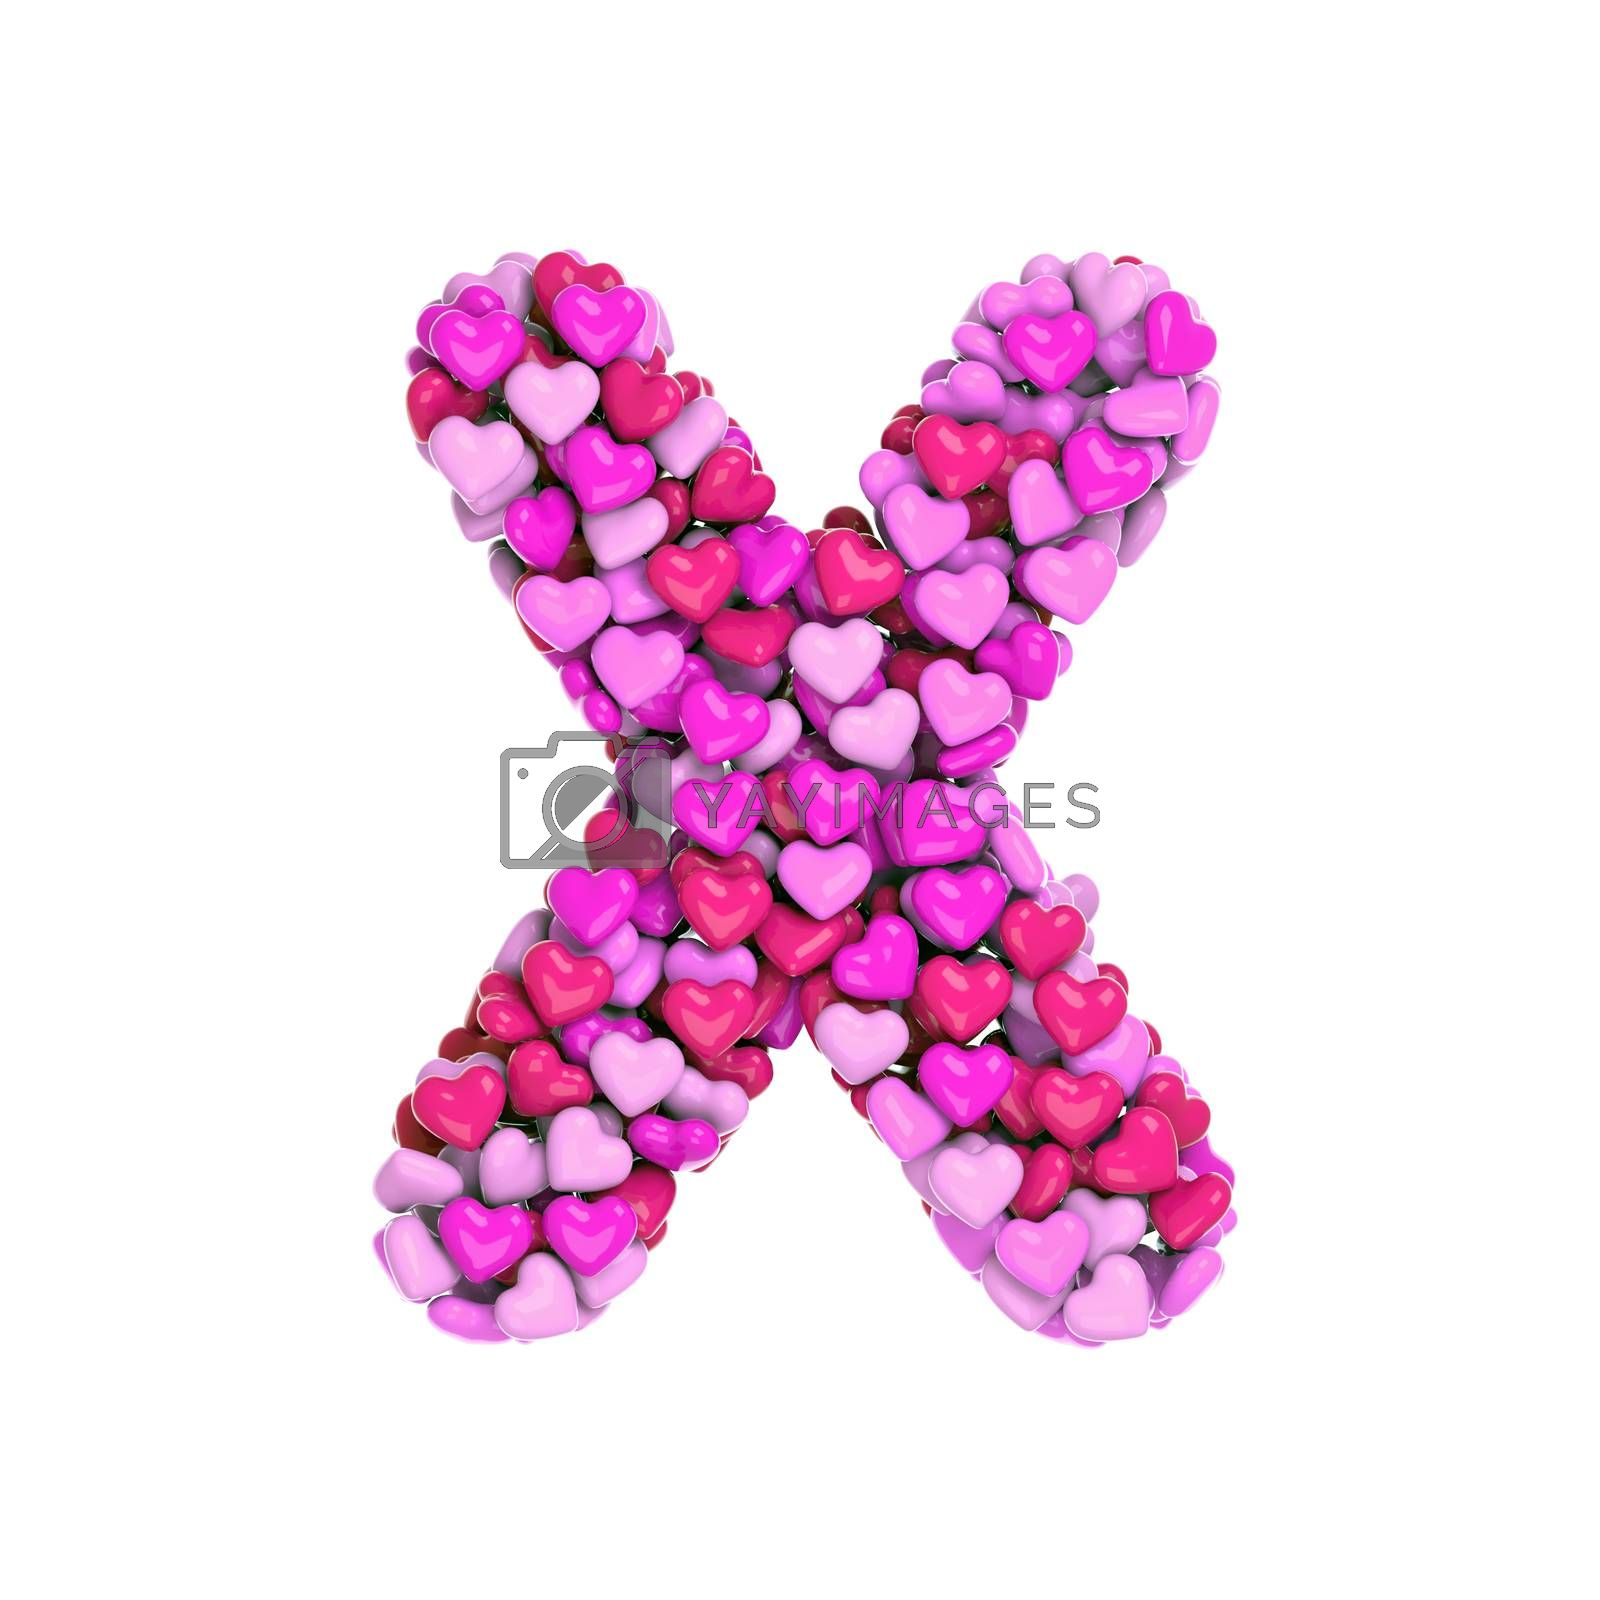 Valentine letter X - Upper-case 3d pink hearts font - Love, passion or wedding concept by chrisroll